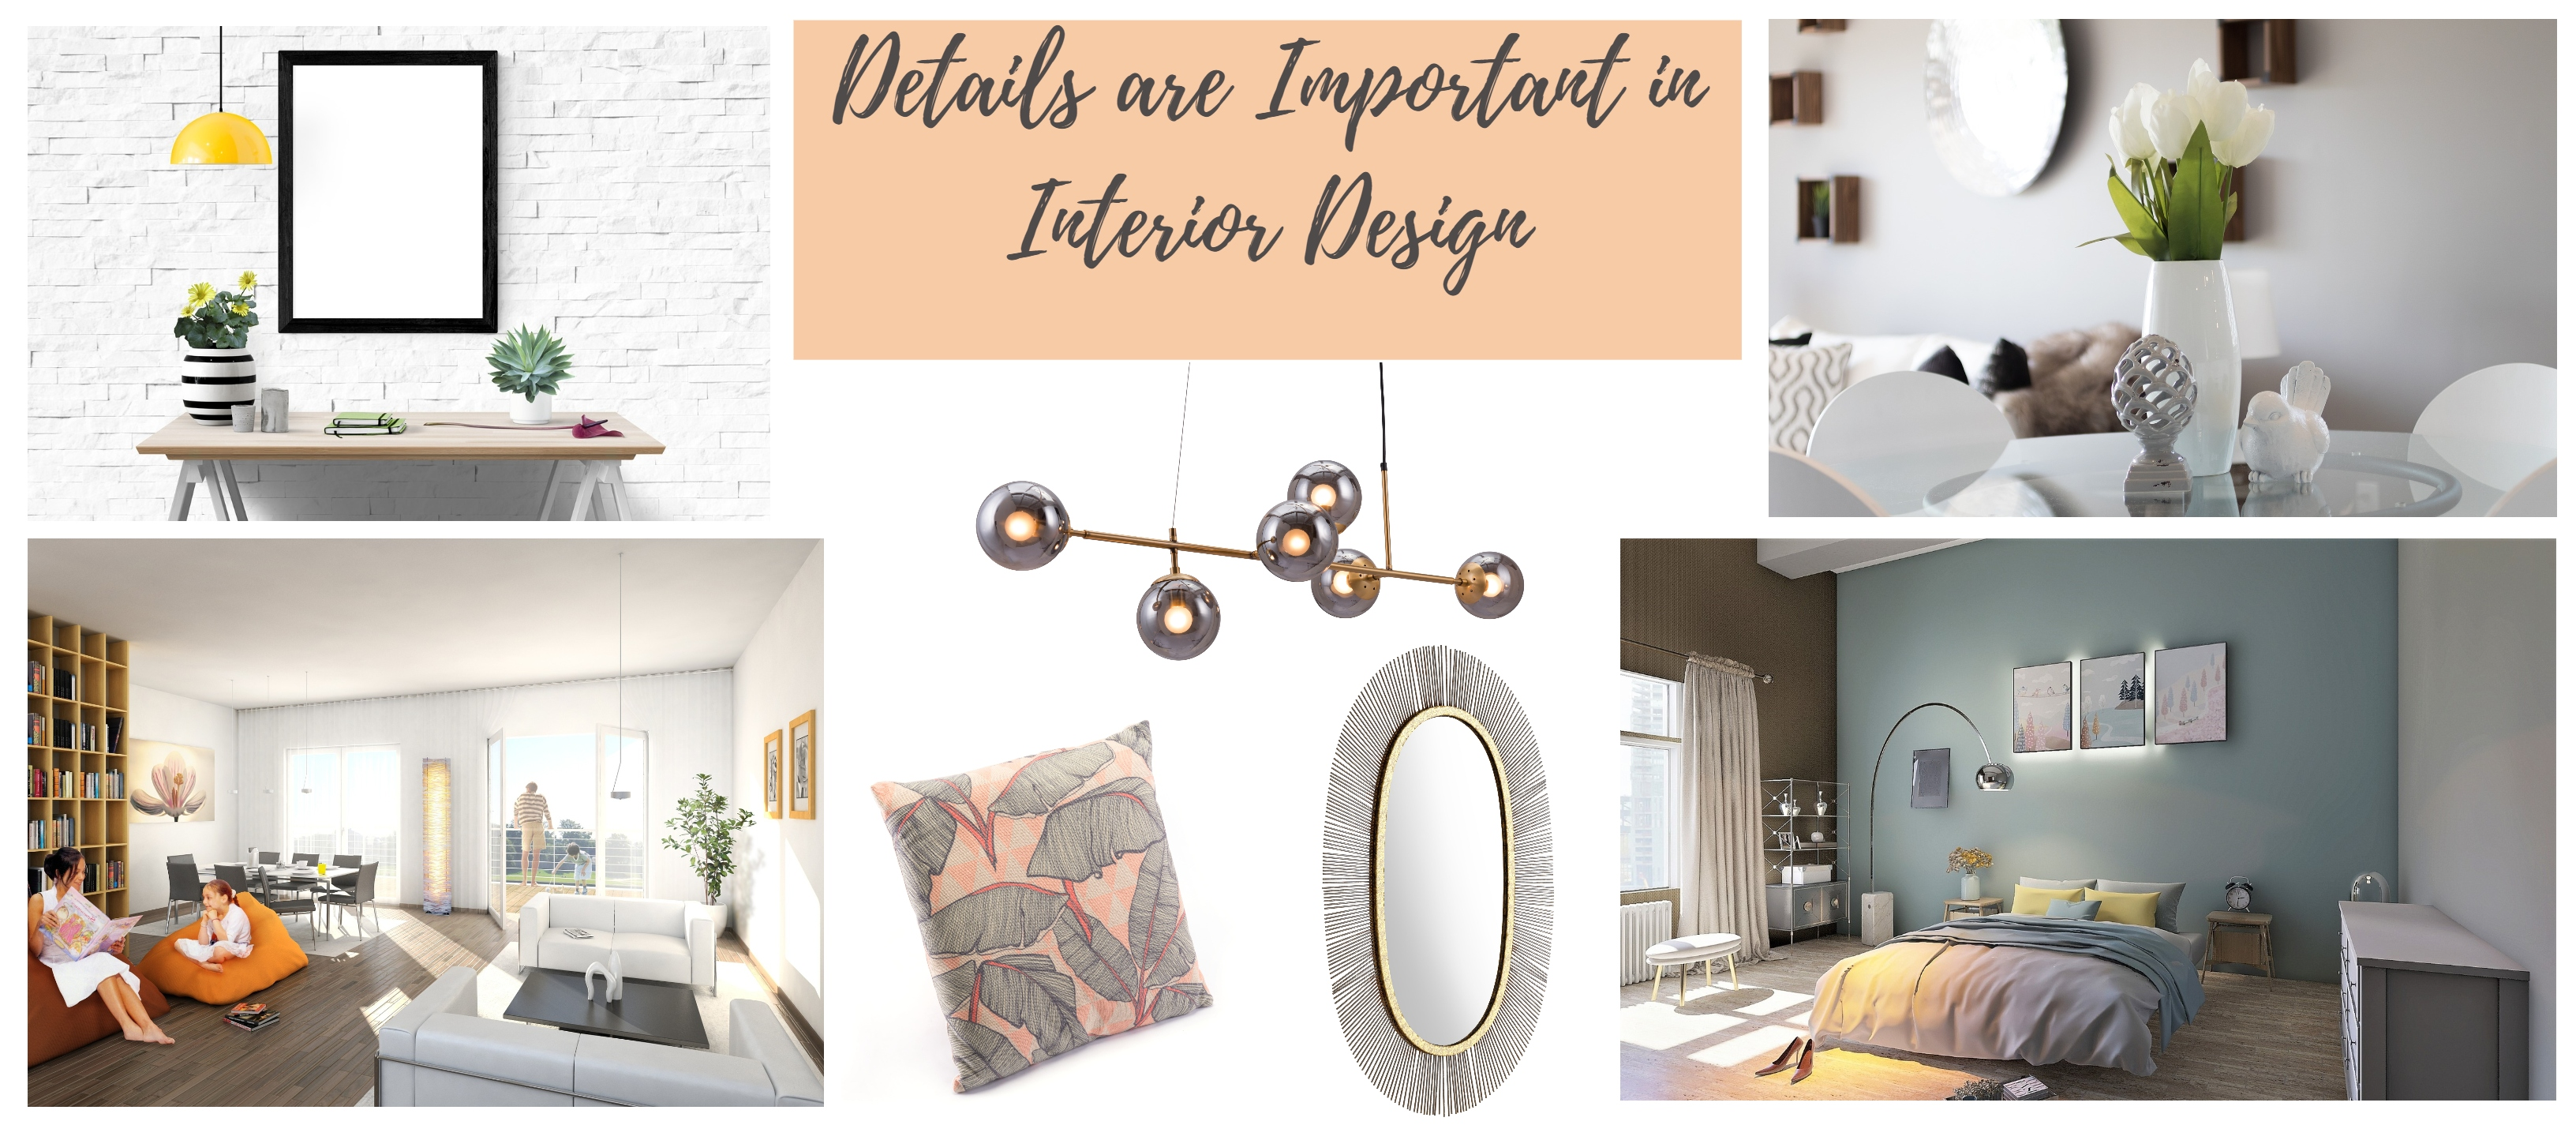 Why are details important in interior design?